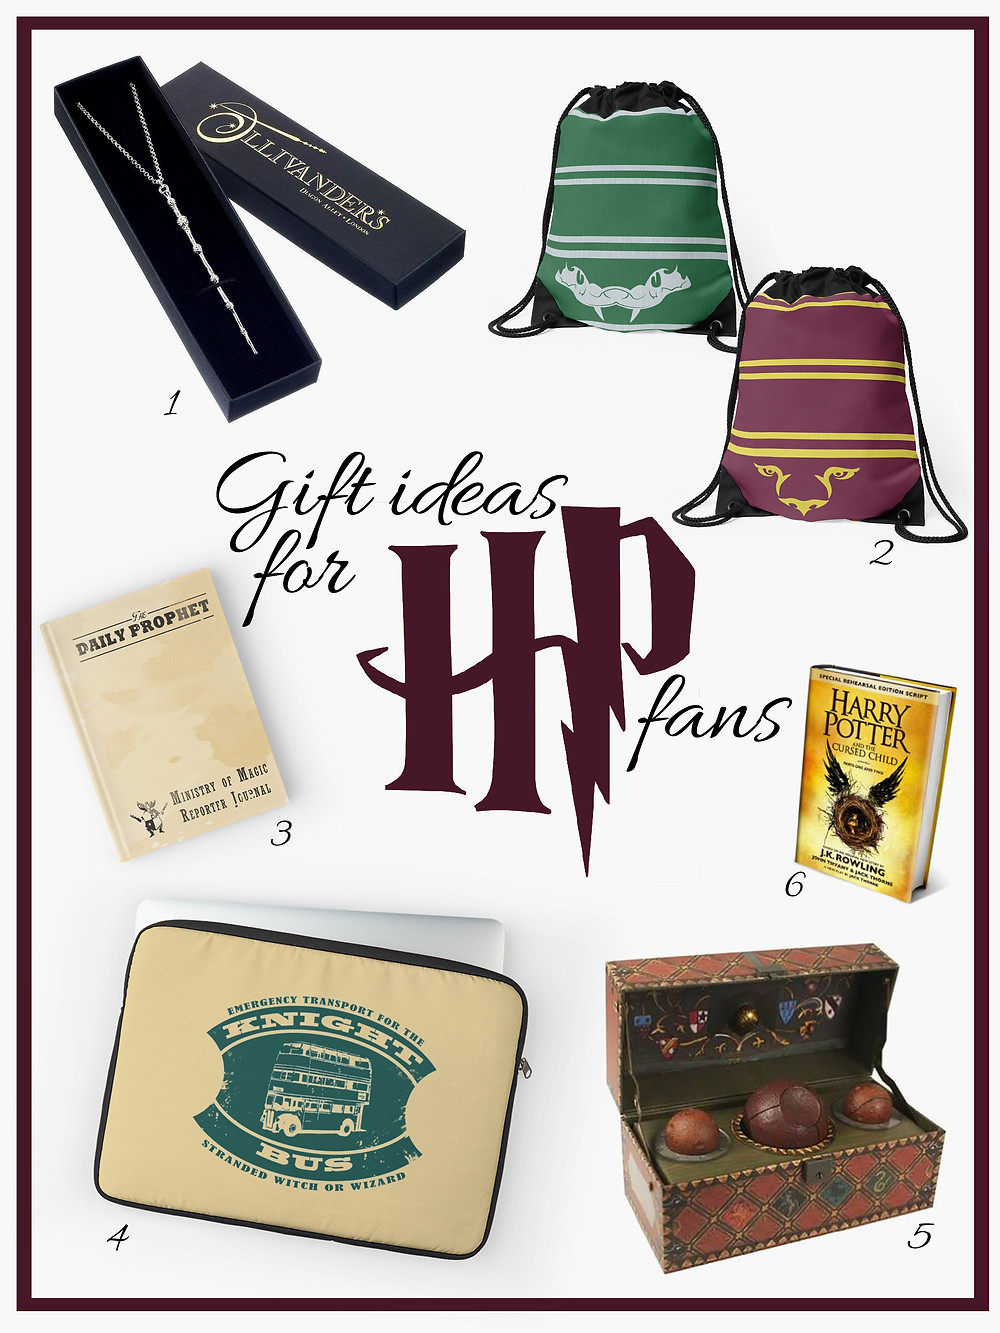 Present ideas for Harry Potter fans - Gathering thoughts